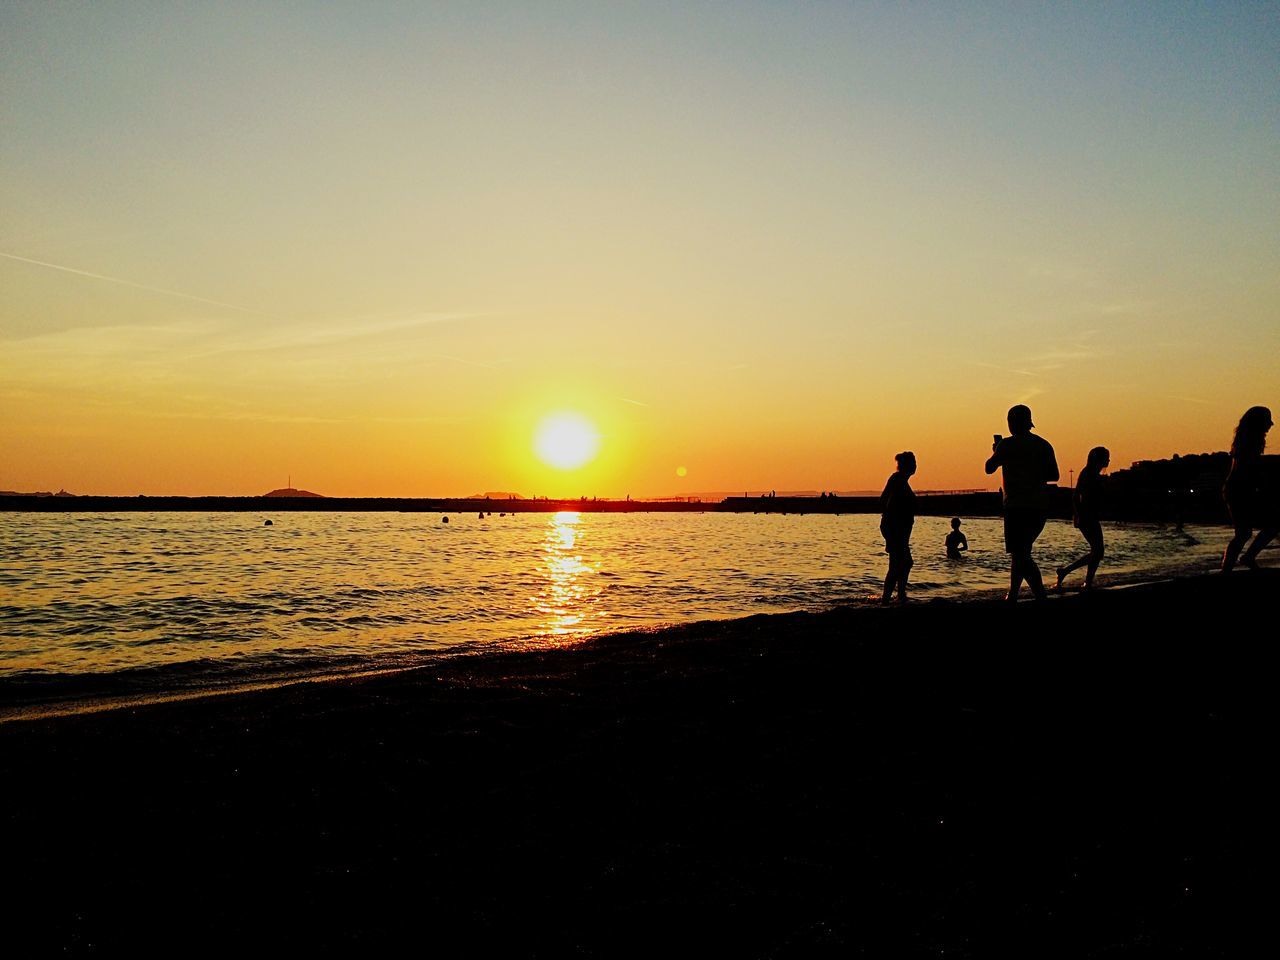 sunset, silhouette, beauty in nature, nature, beach, real people, scenics, orange color, leisure activity, sky, sea, togetherness, sun, lifestyles, tranquil scene, vacations, outdoors, water, men, tranquility, women, sand, full length, horizon over water, friendship, mammal, people